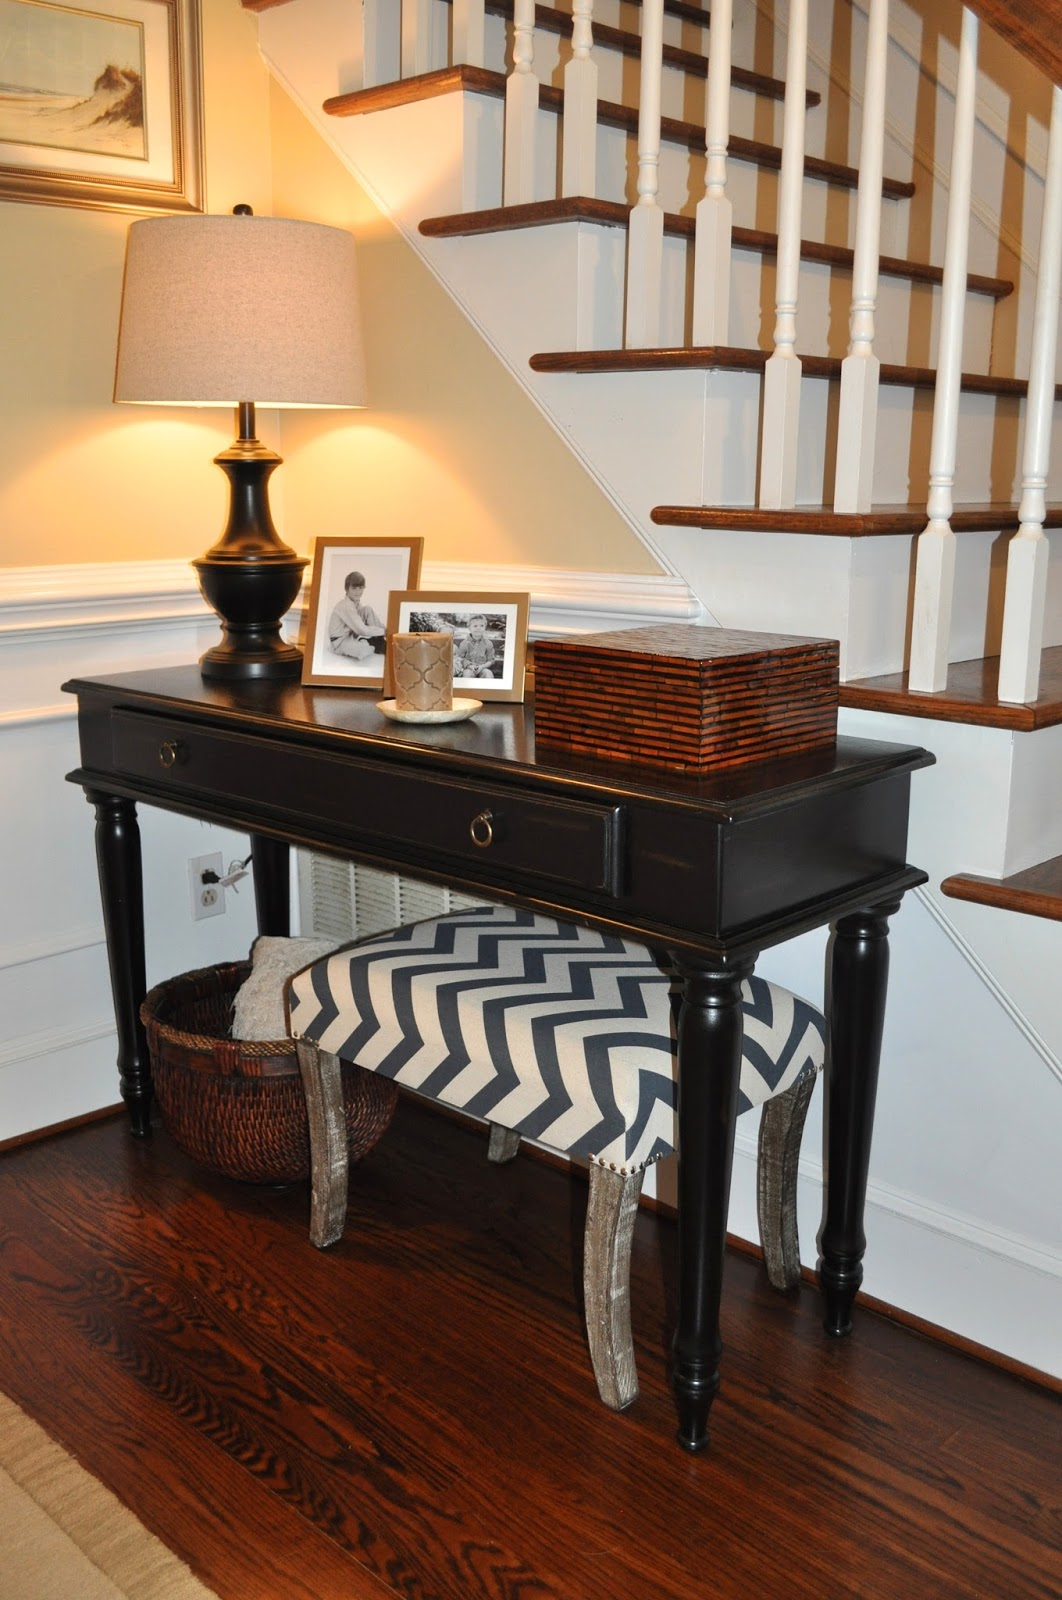 The Collected Interior: Mixing Pattern & Texture